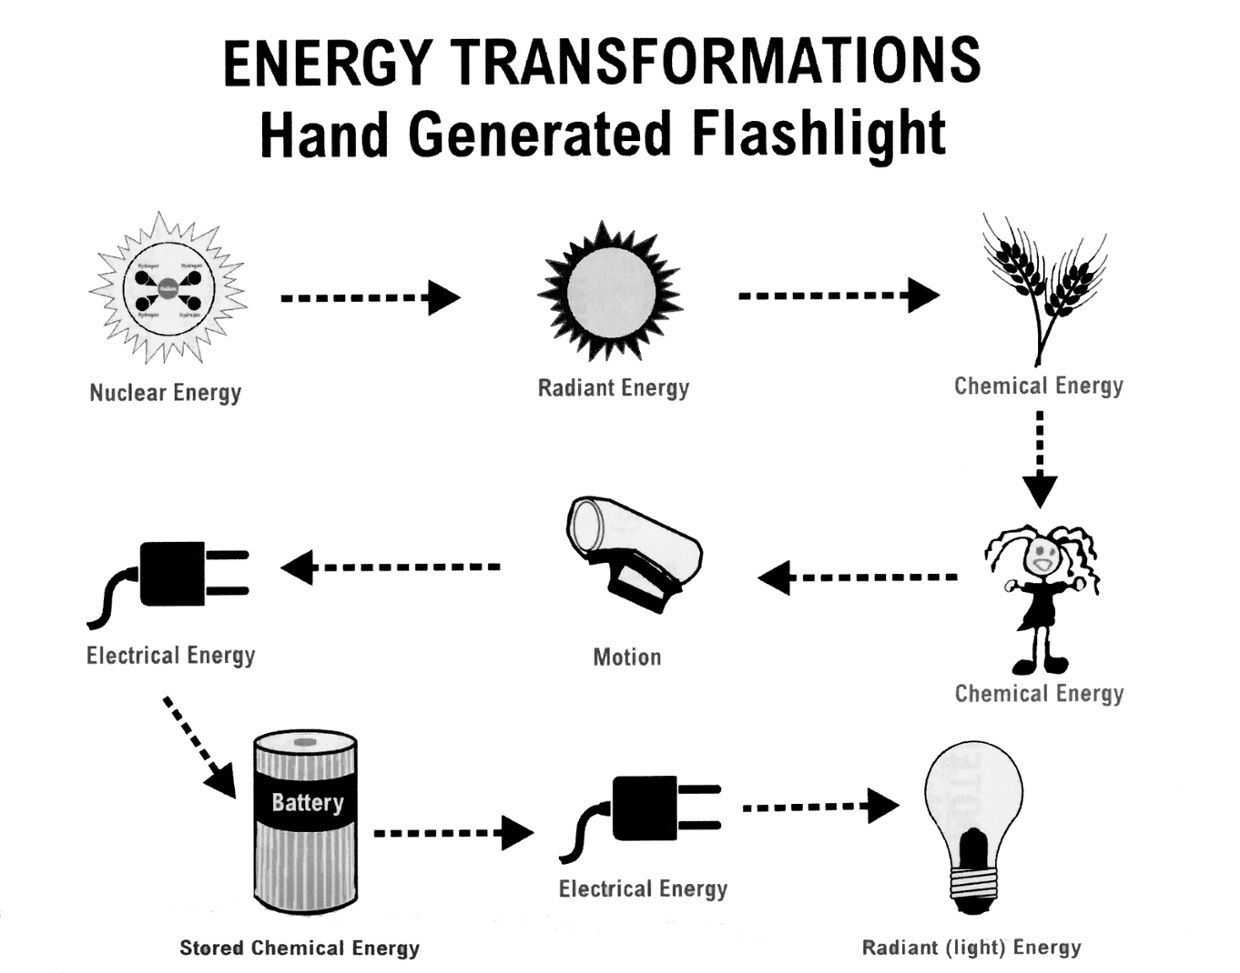 Energy transformations student worksheet.